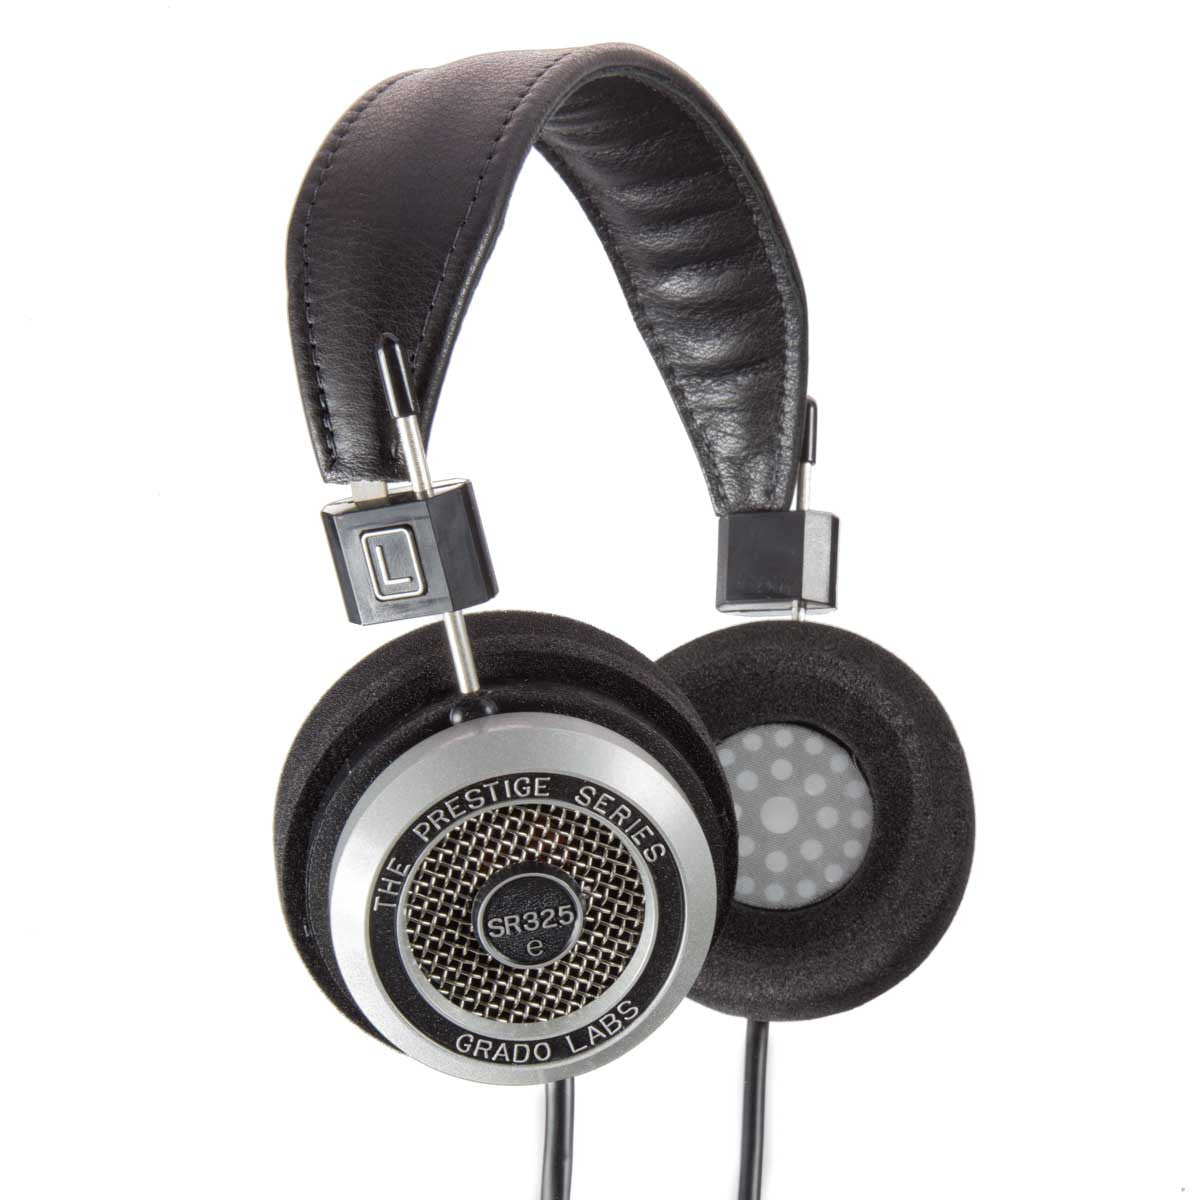 Grado SR 325e Headphone